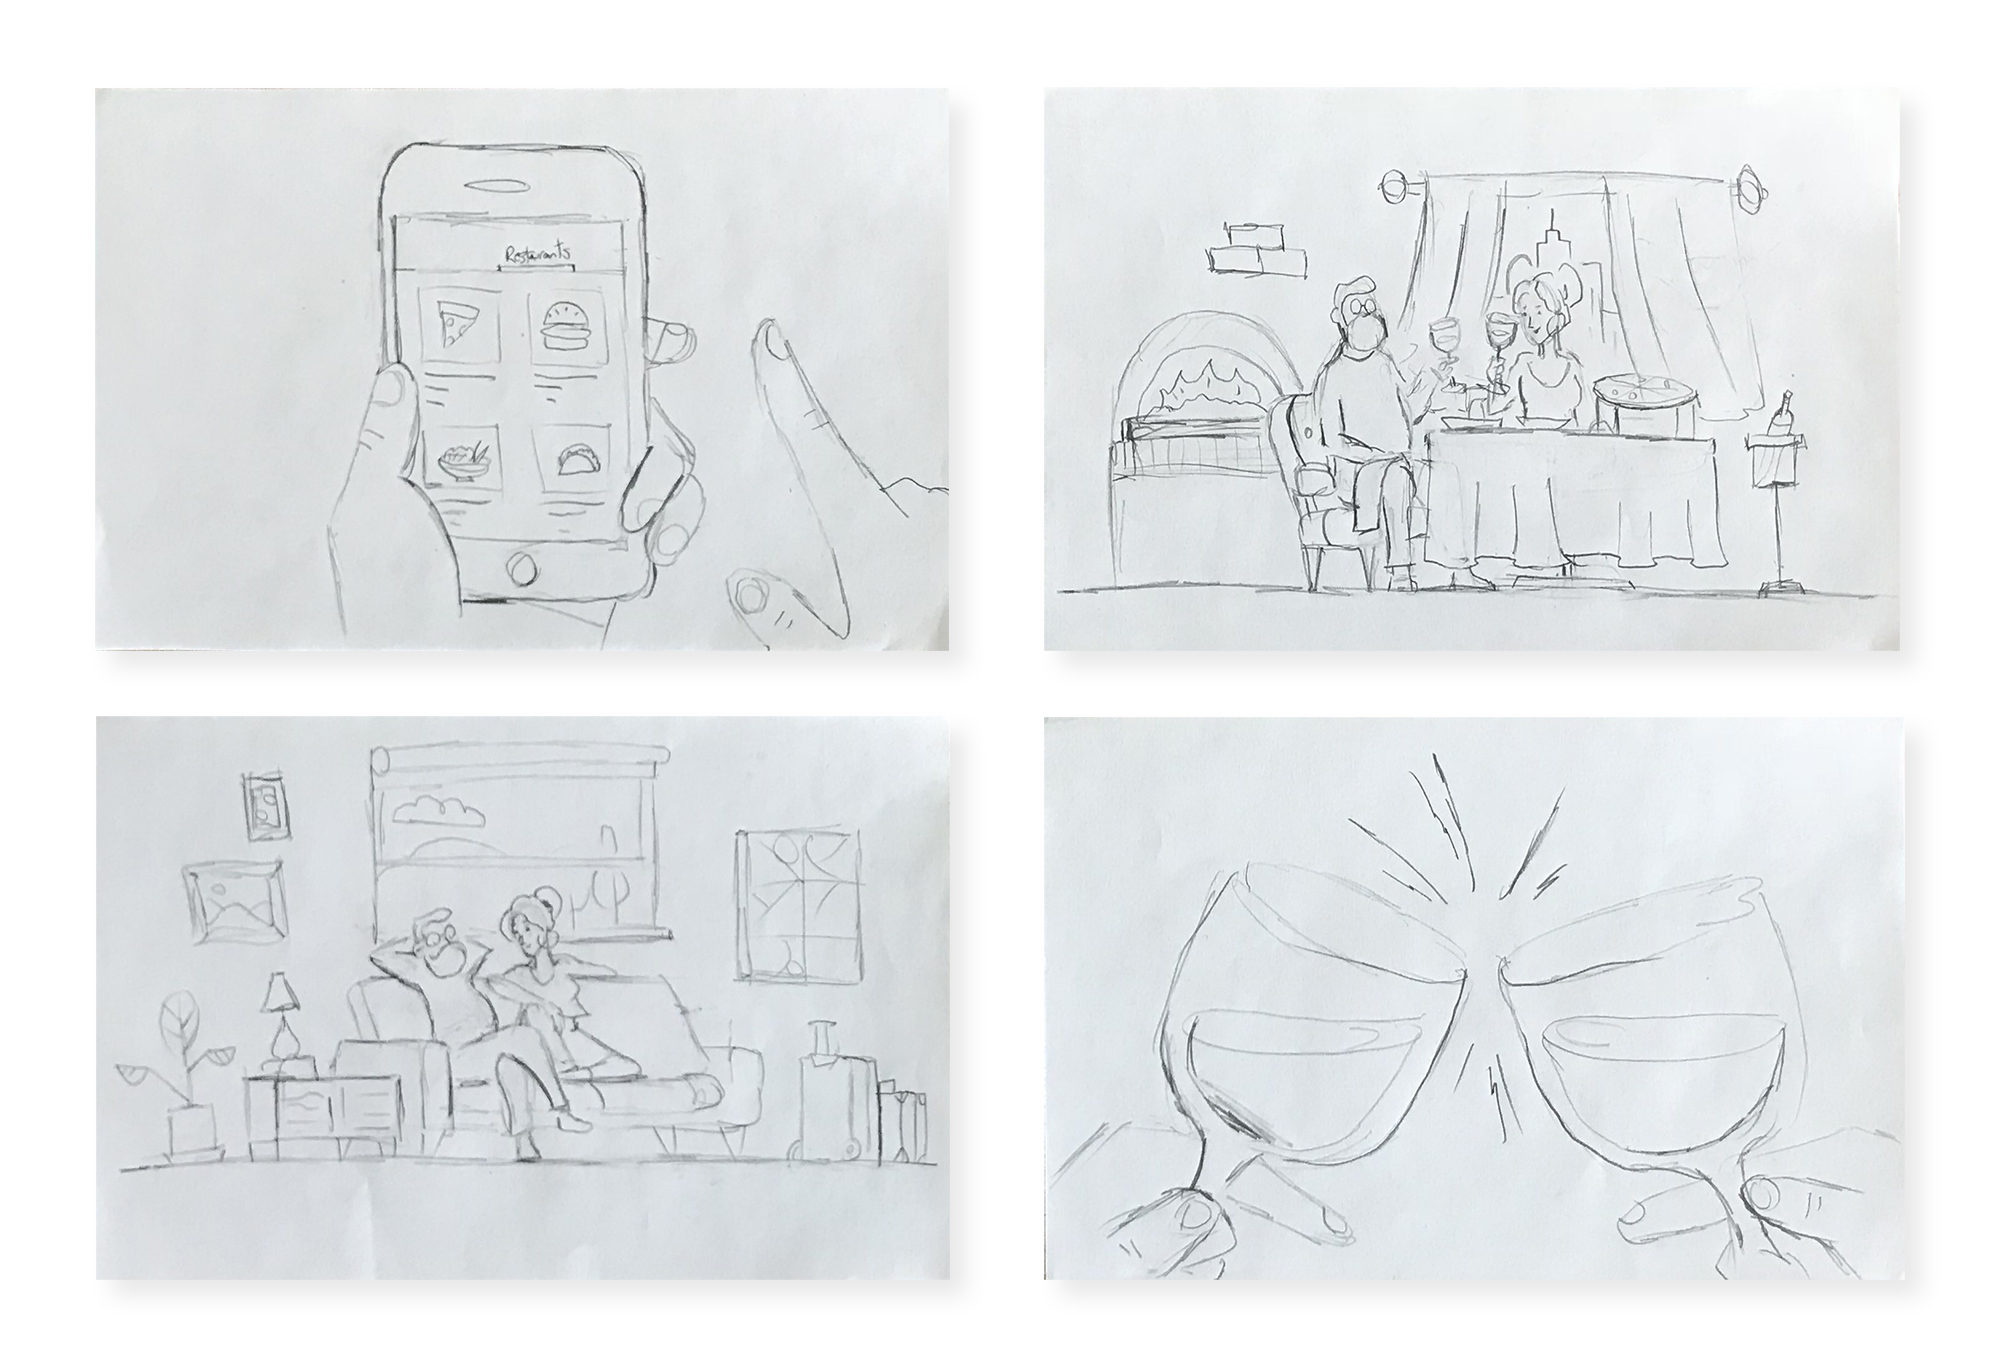 Resy Storyboards2